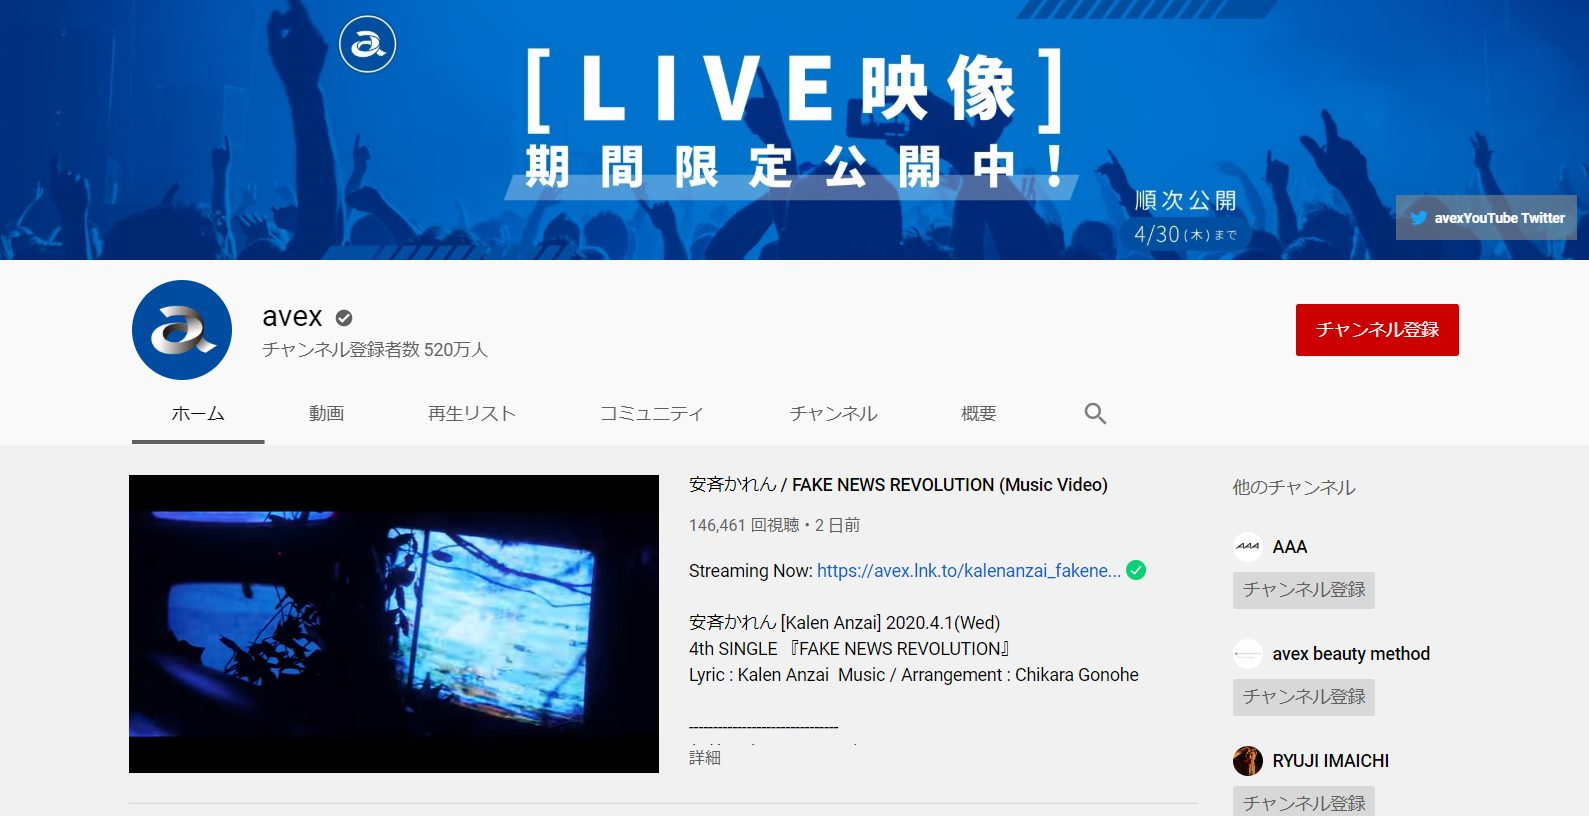 youtube-channel-avex